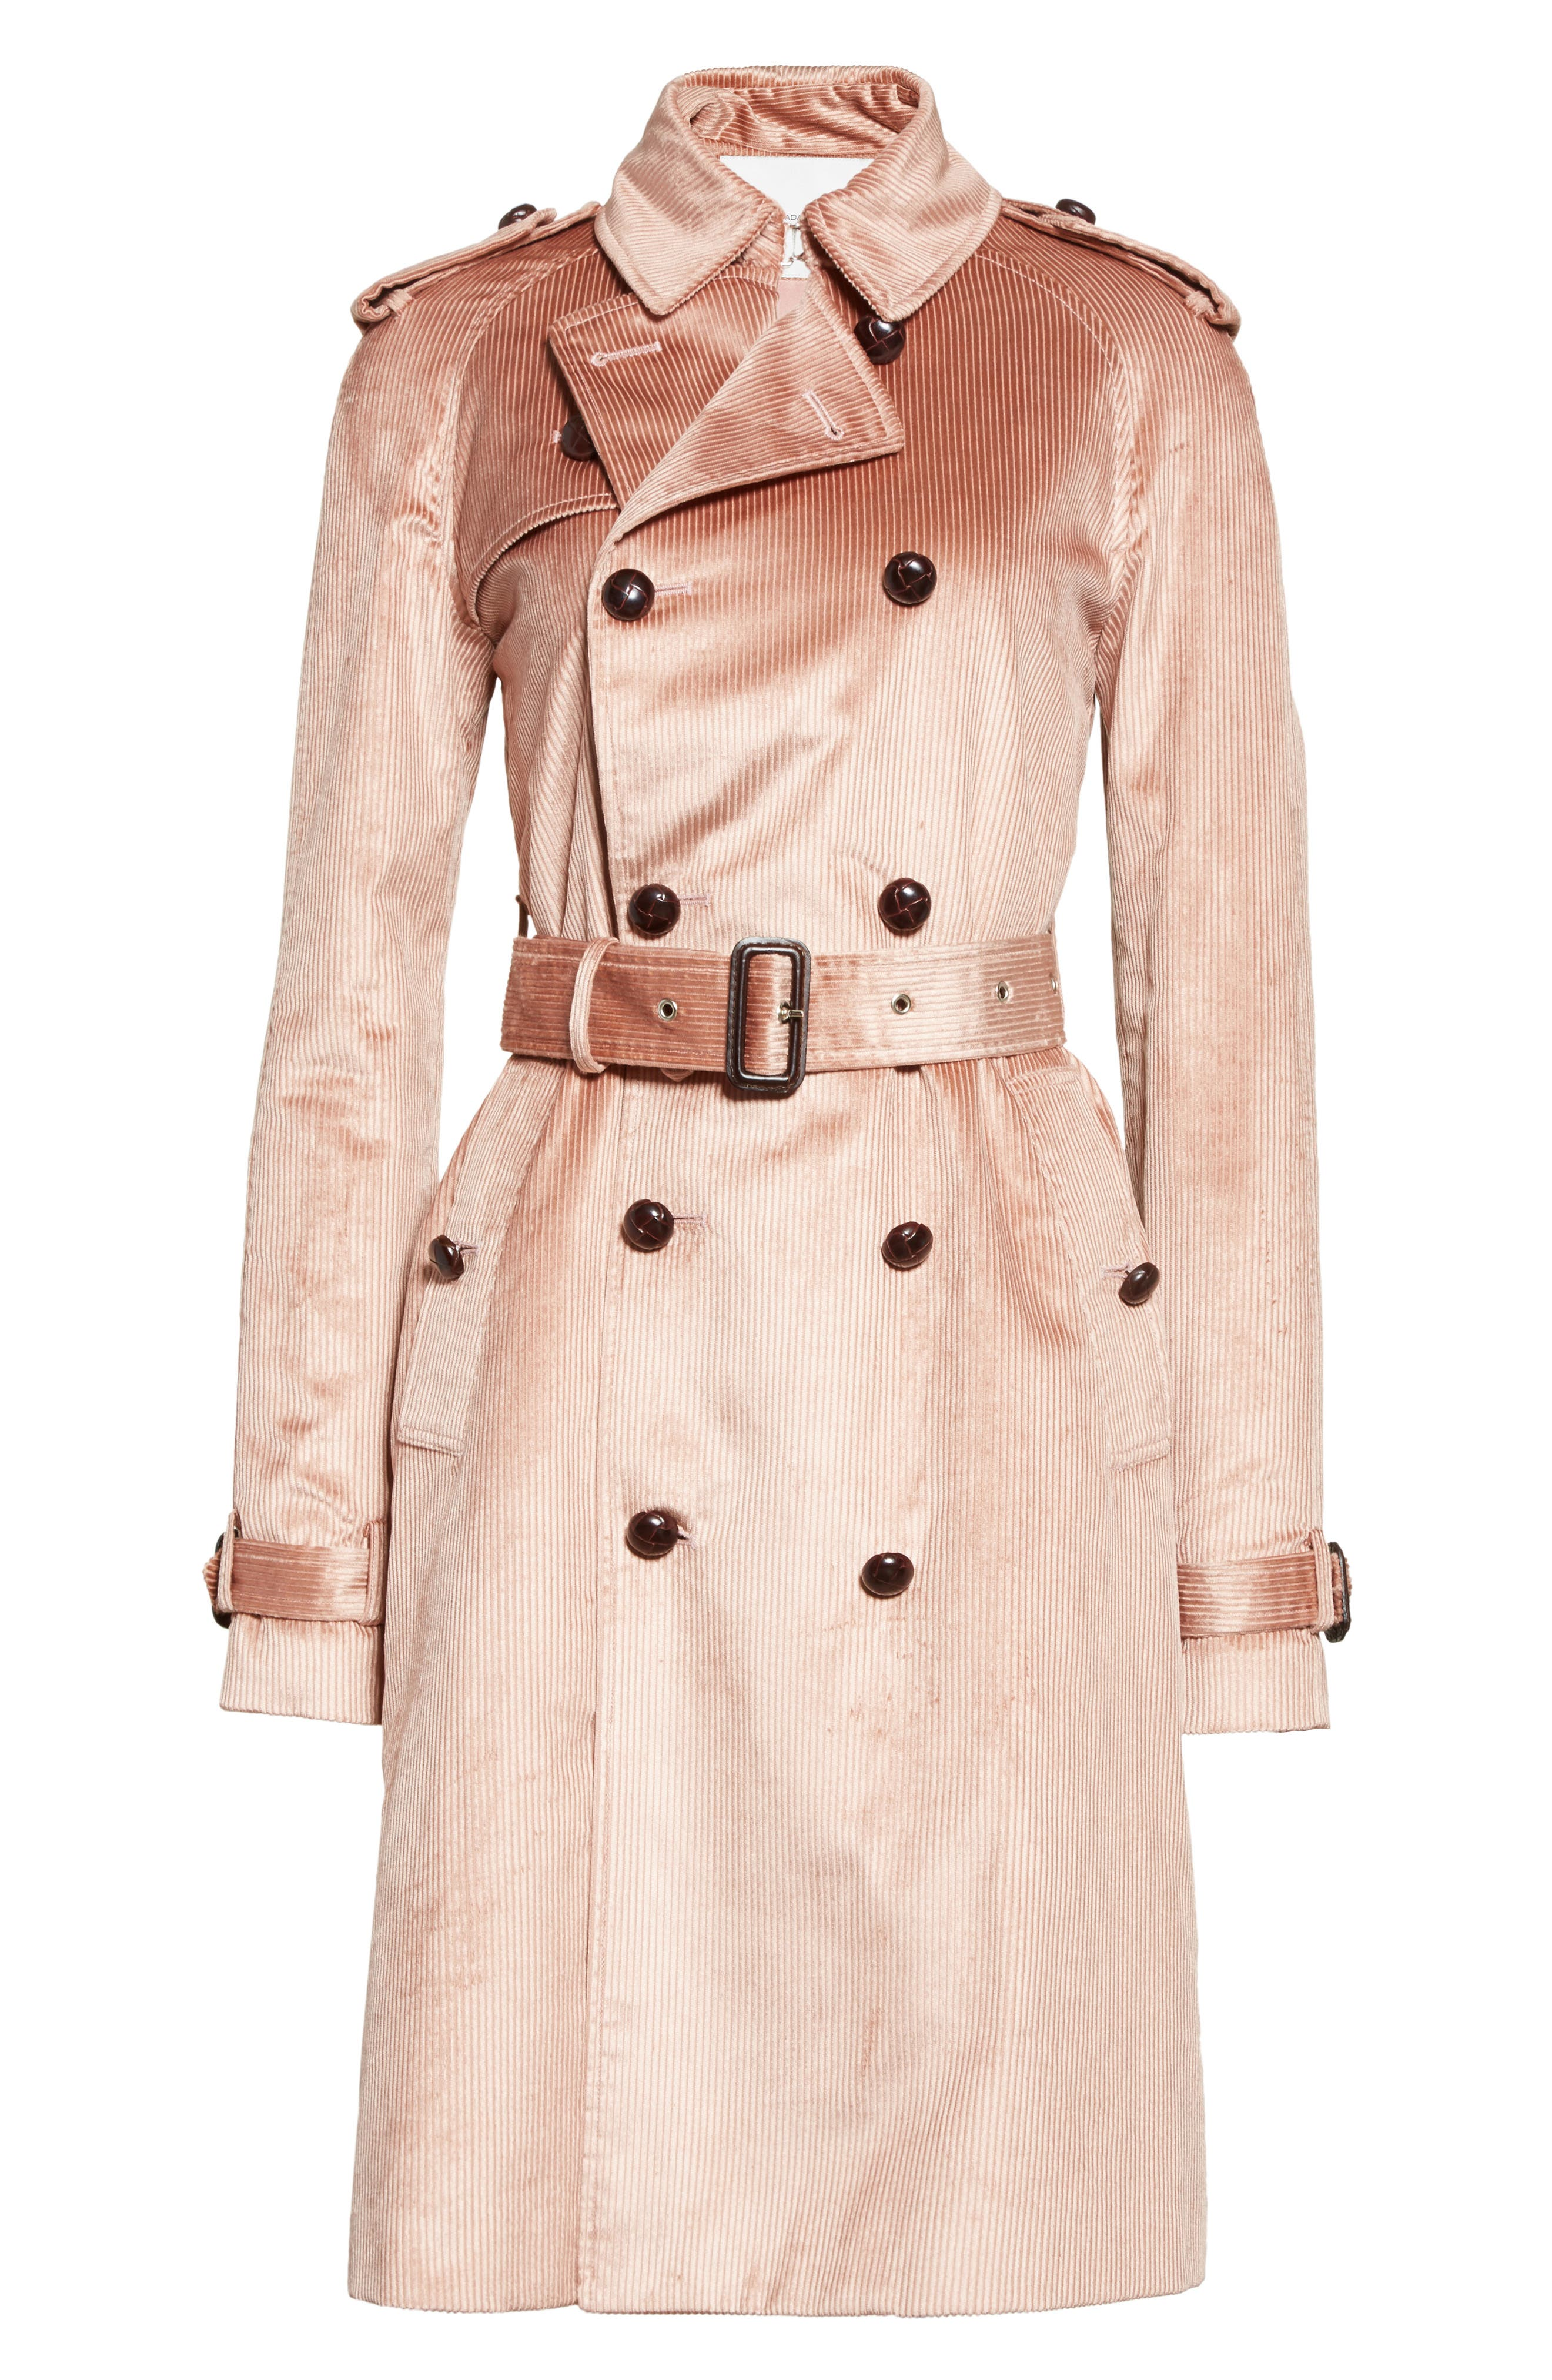 Corduroy Belted Trench Coat,                             Alternate thumbnail 5, color,                             680